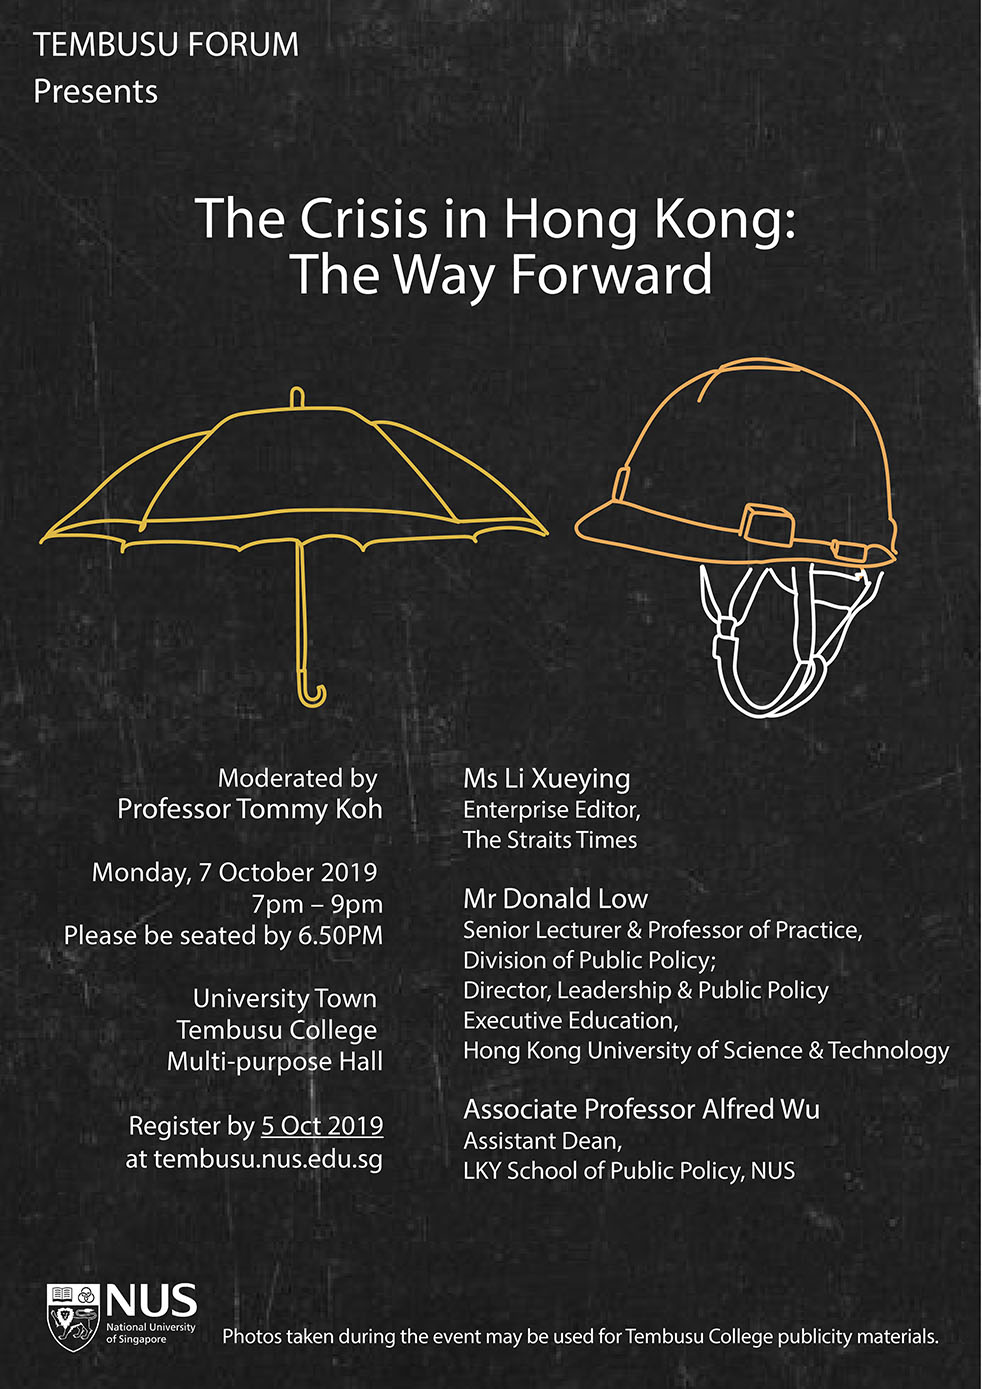 Tembusu Forum Presents: The Crisis in Hong Kong: The Way Forward